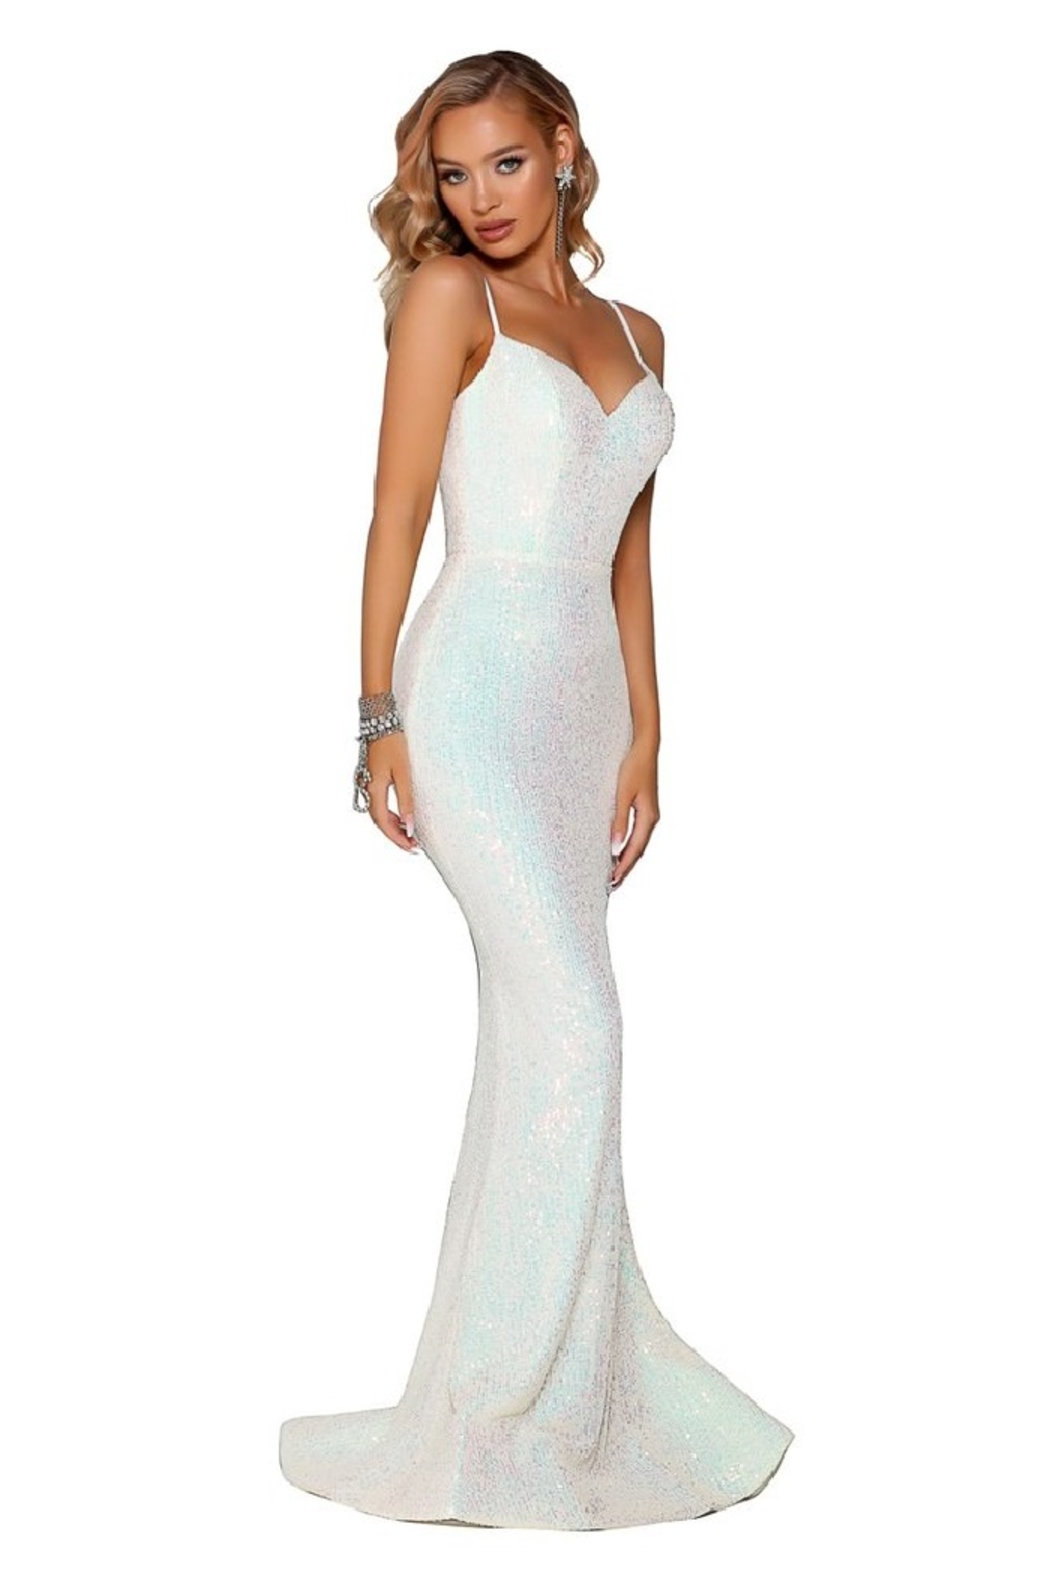 PORTIA AND SCARLETT Pearl Sequin Fit & Flare Long Formal Dress - Side Cropped Image